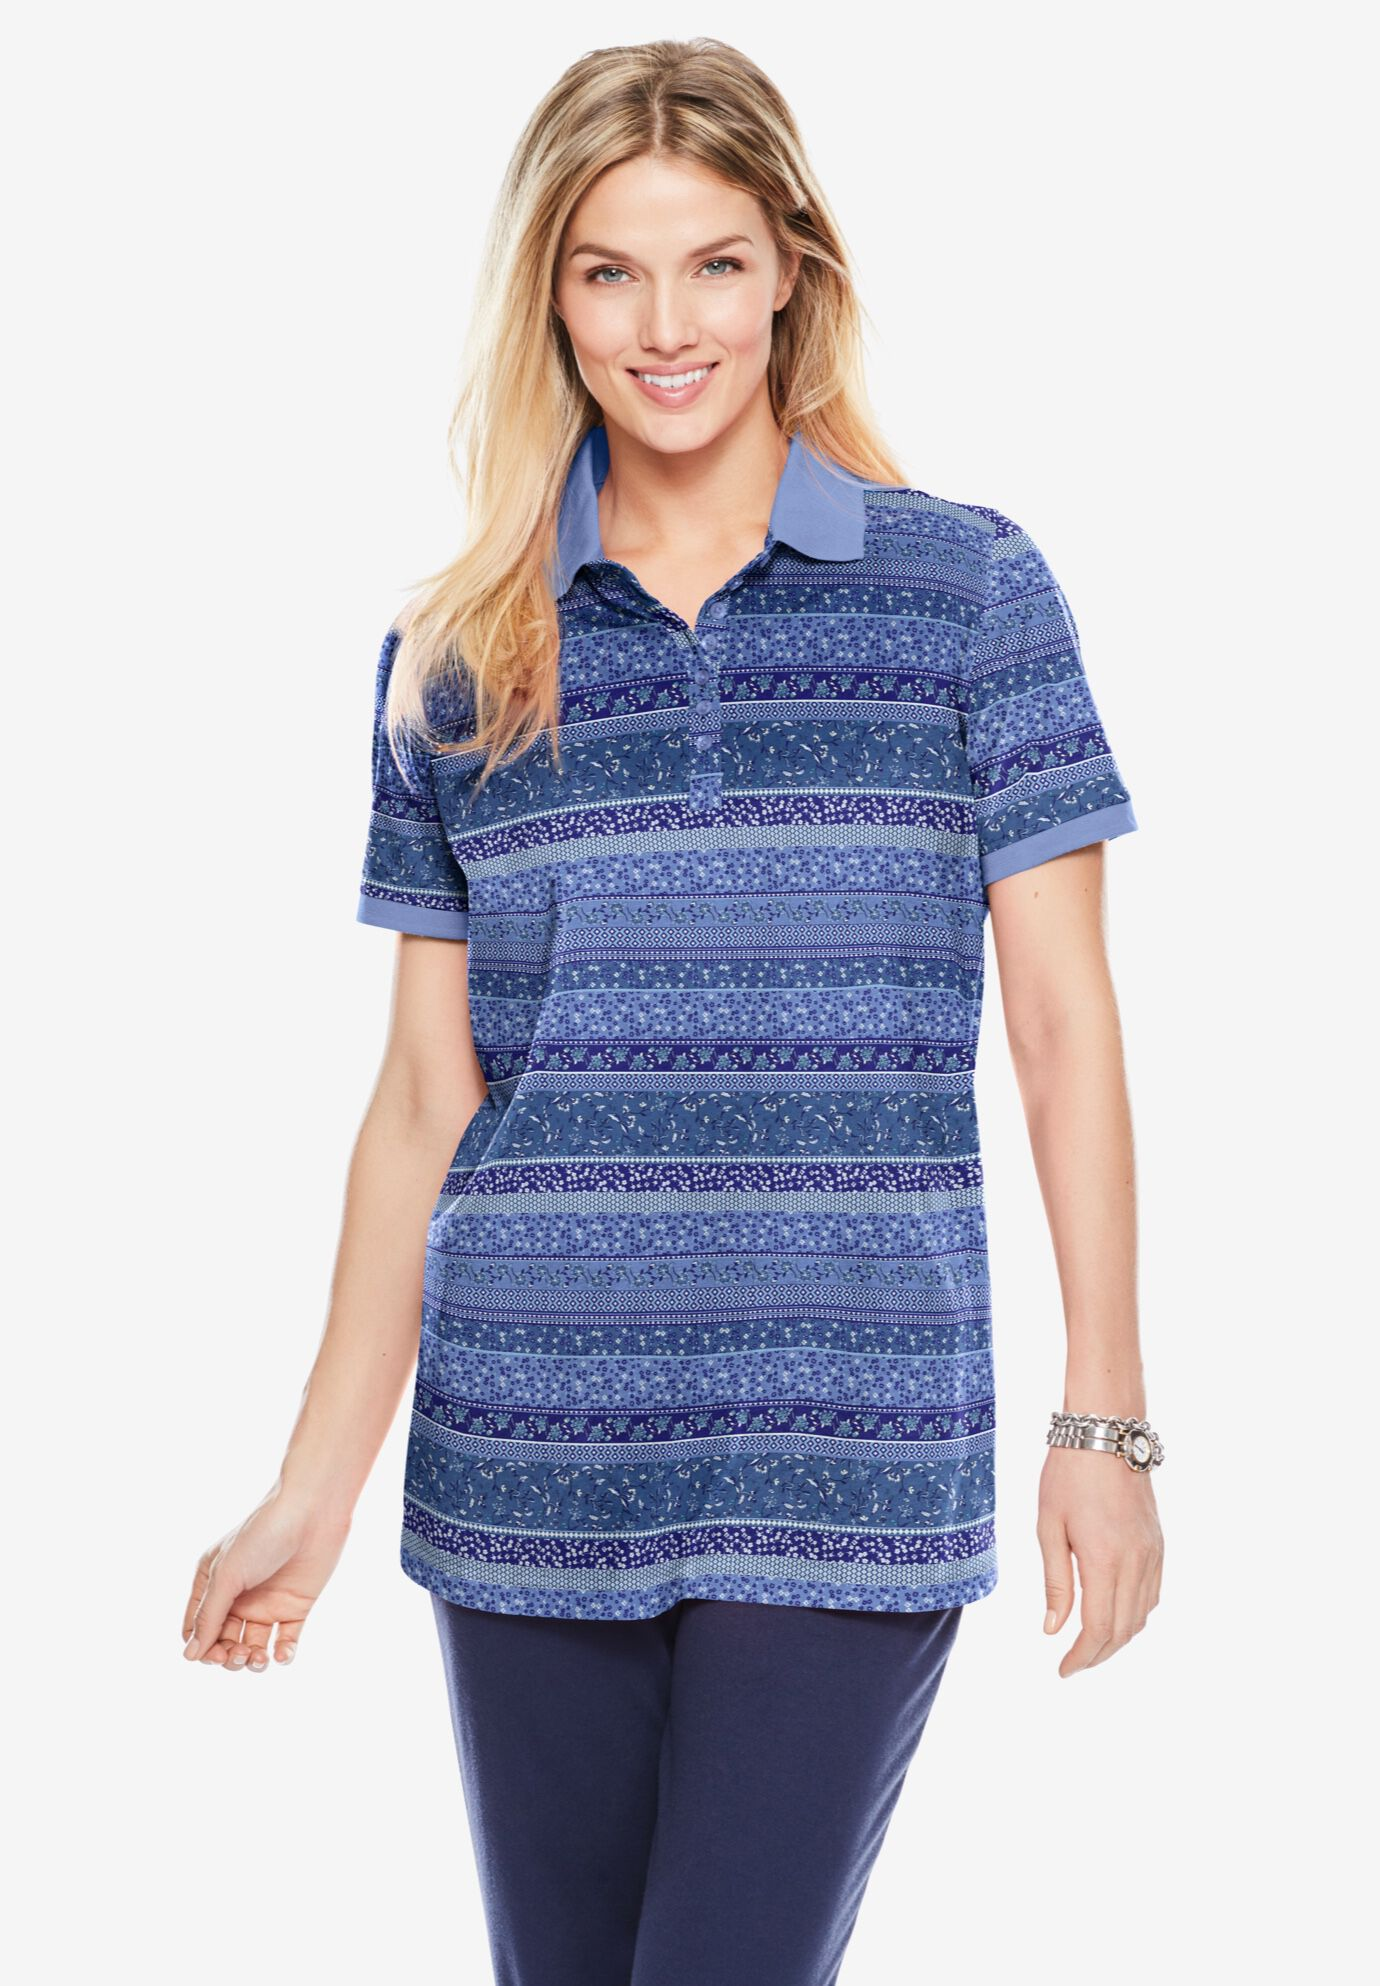 Plus Size Polo Shirts for Women | Woman Within